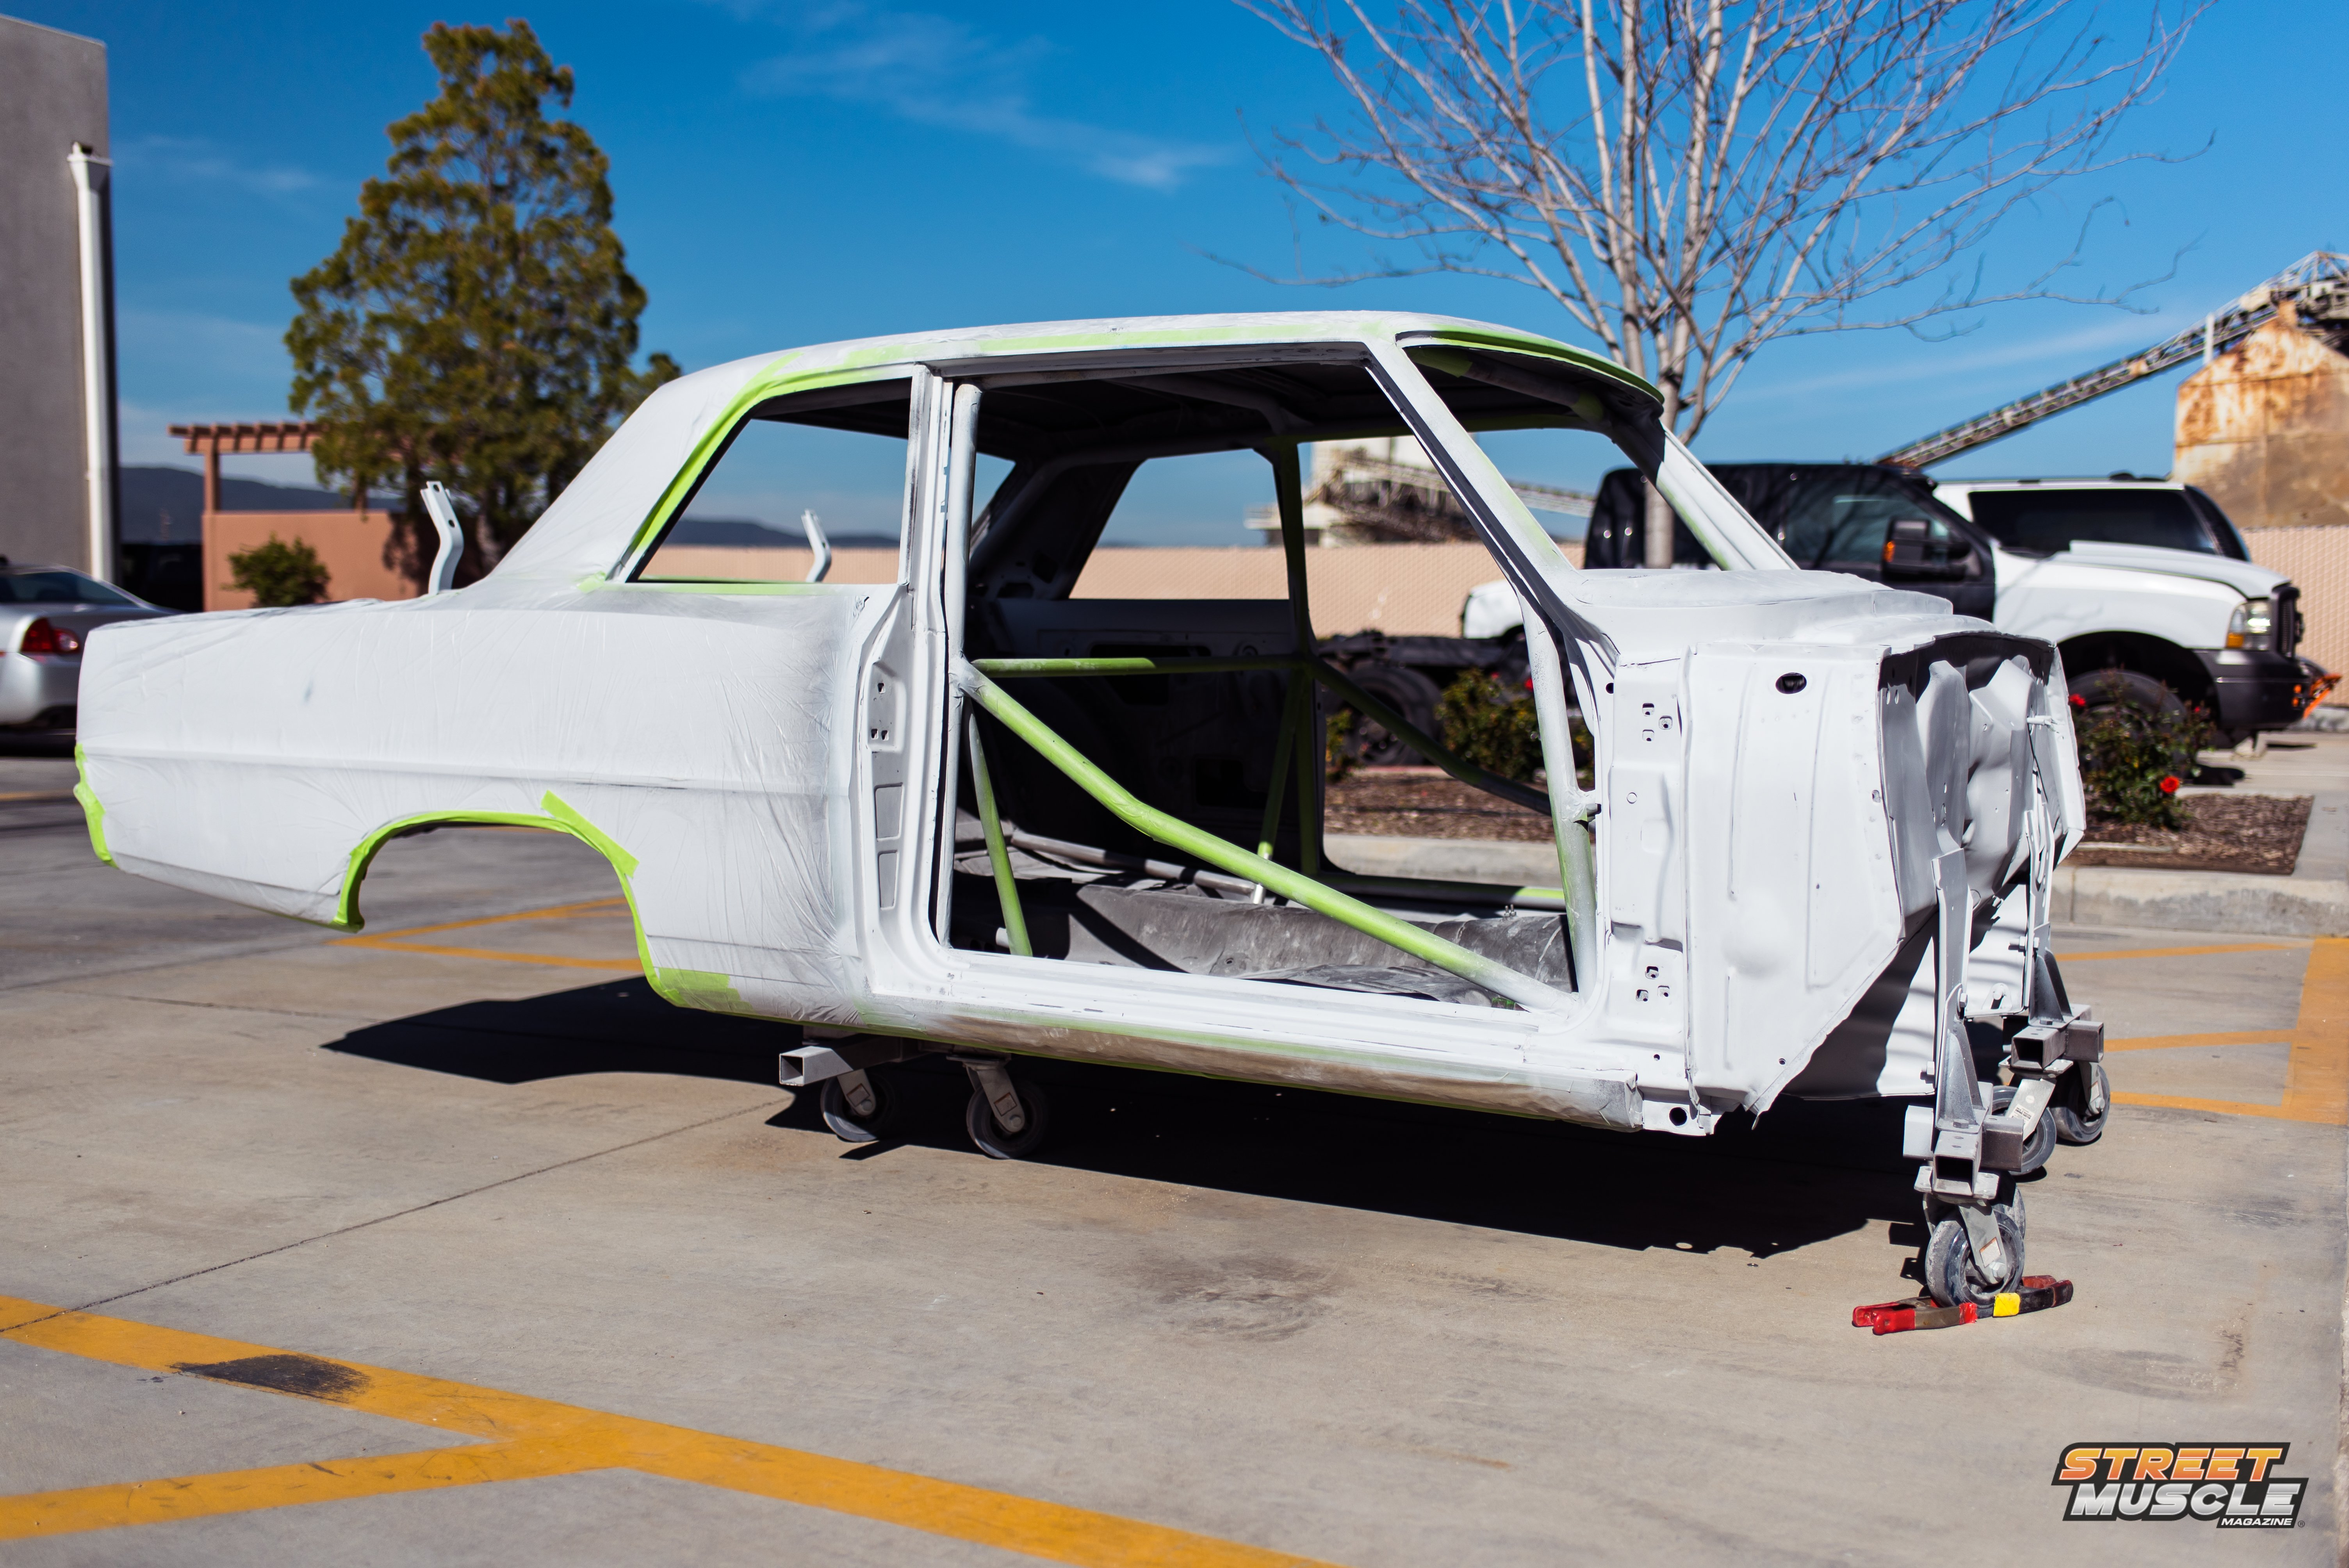 Project Maxstreet 1966 Chevy Ii Nova Build Update Dome Light Wire They Still Have A Little Bit Of Work Left To Go But We Expect The Car Take Up Residence In Paint Booth Get Top Coats Very Soon Stay Tuned